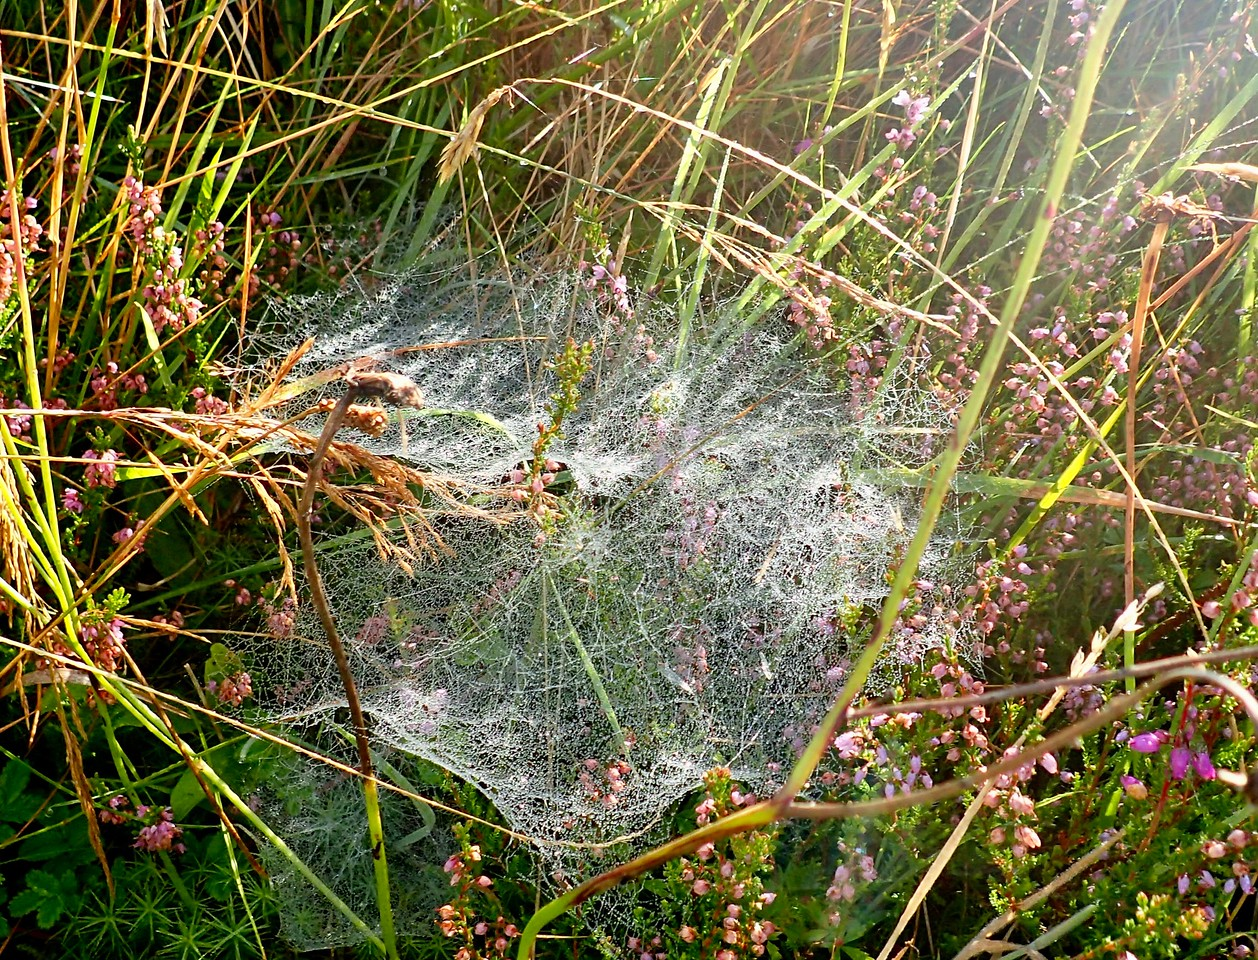 amazing webs in the dew